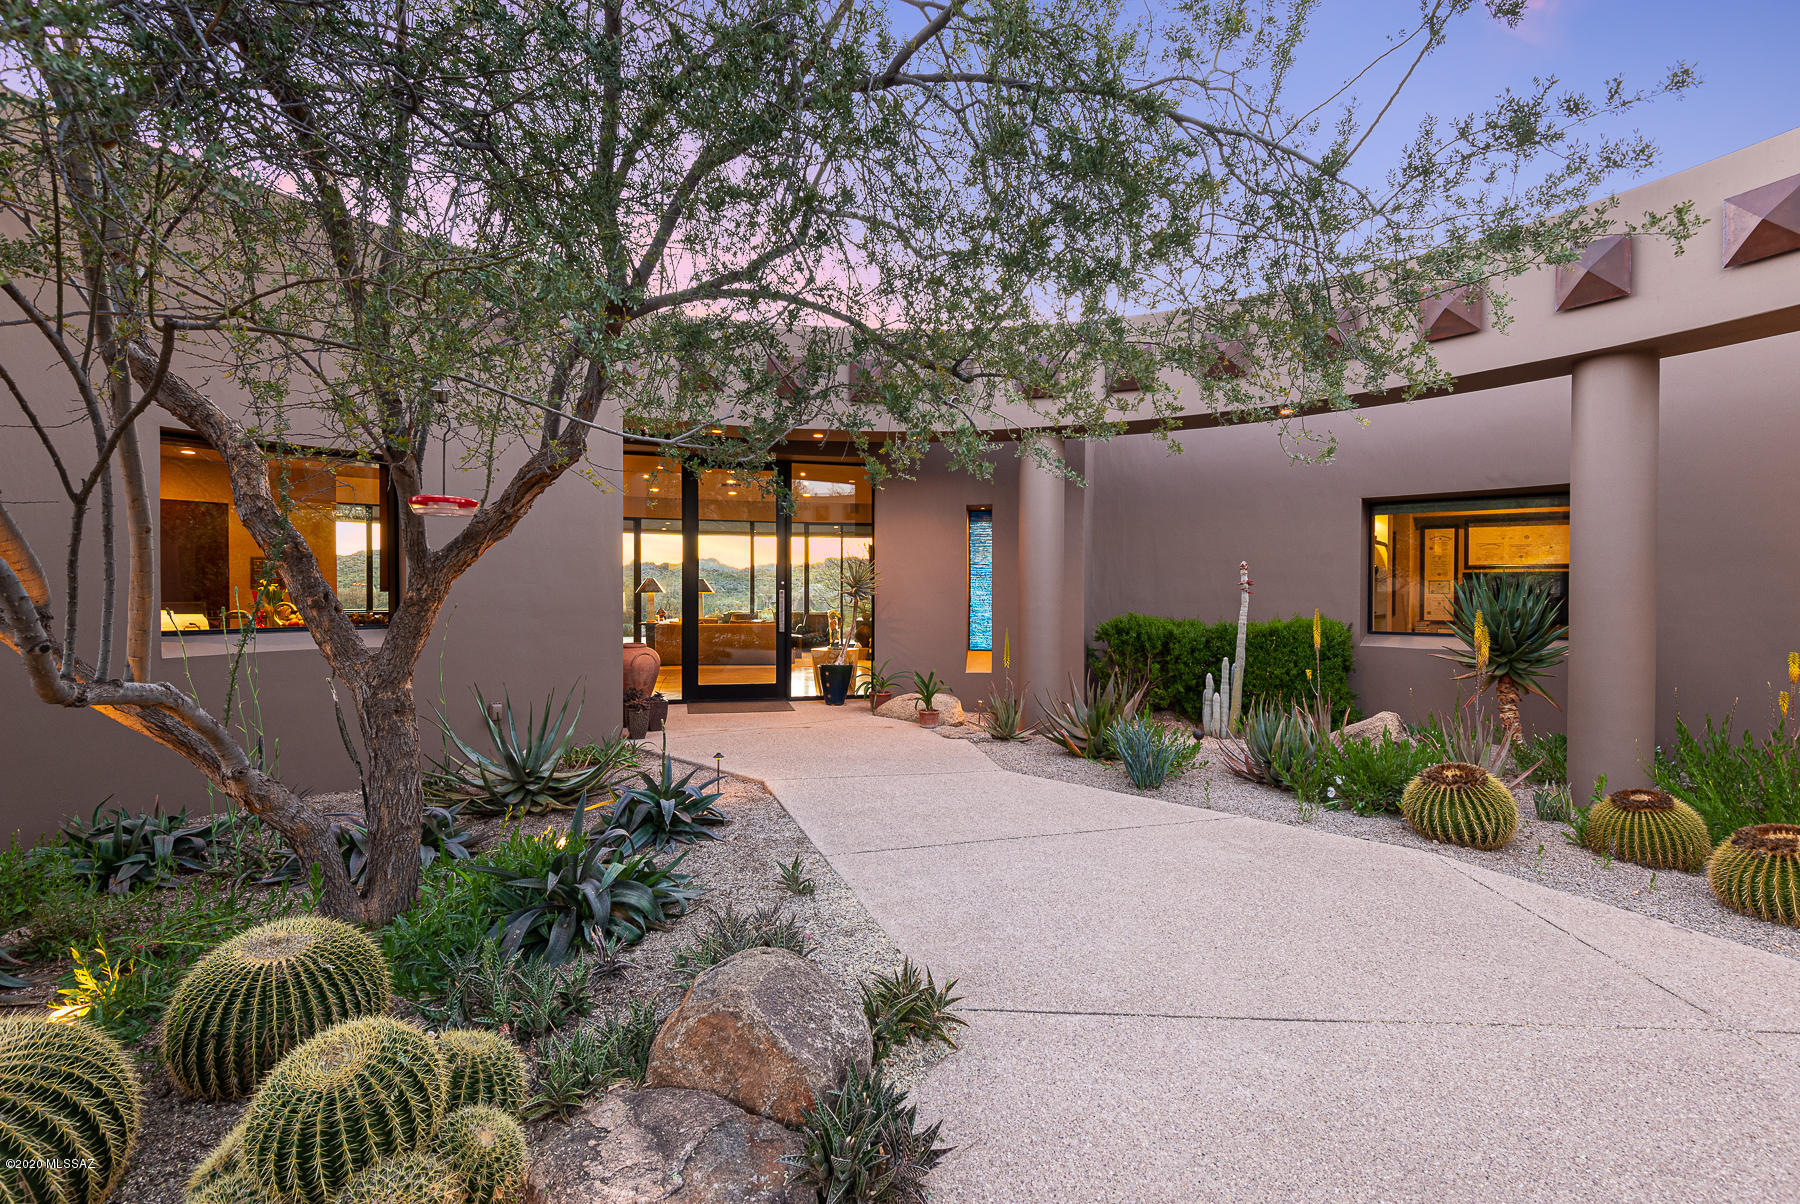 Photo of 525 E Crescent Moon Drive, Oro Valley, AZ 85755